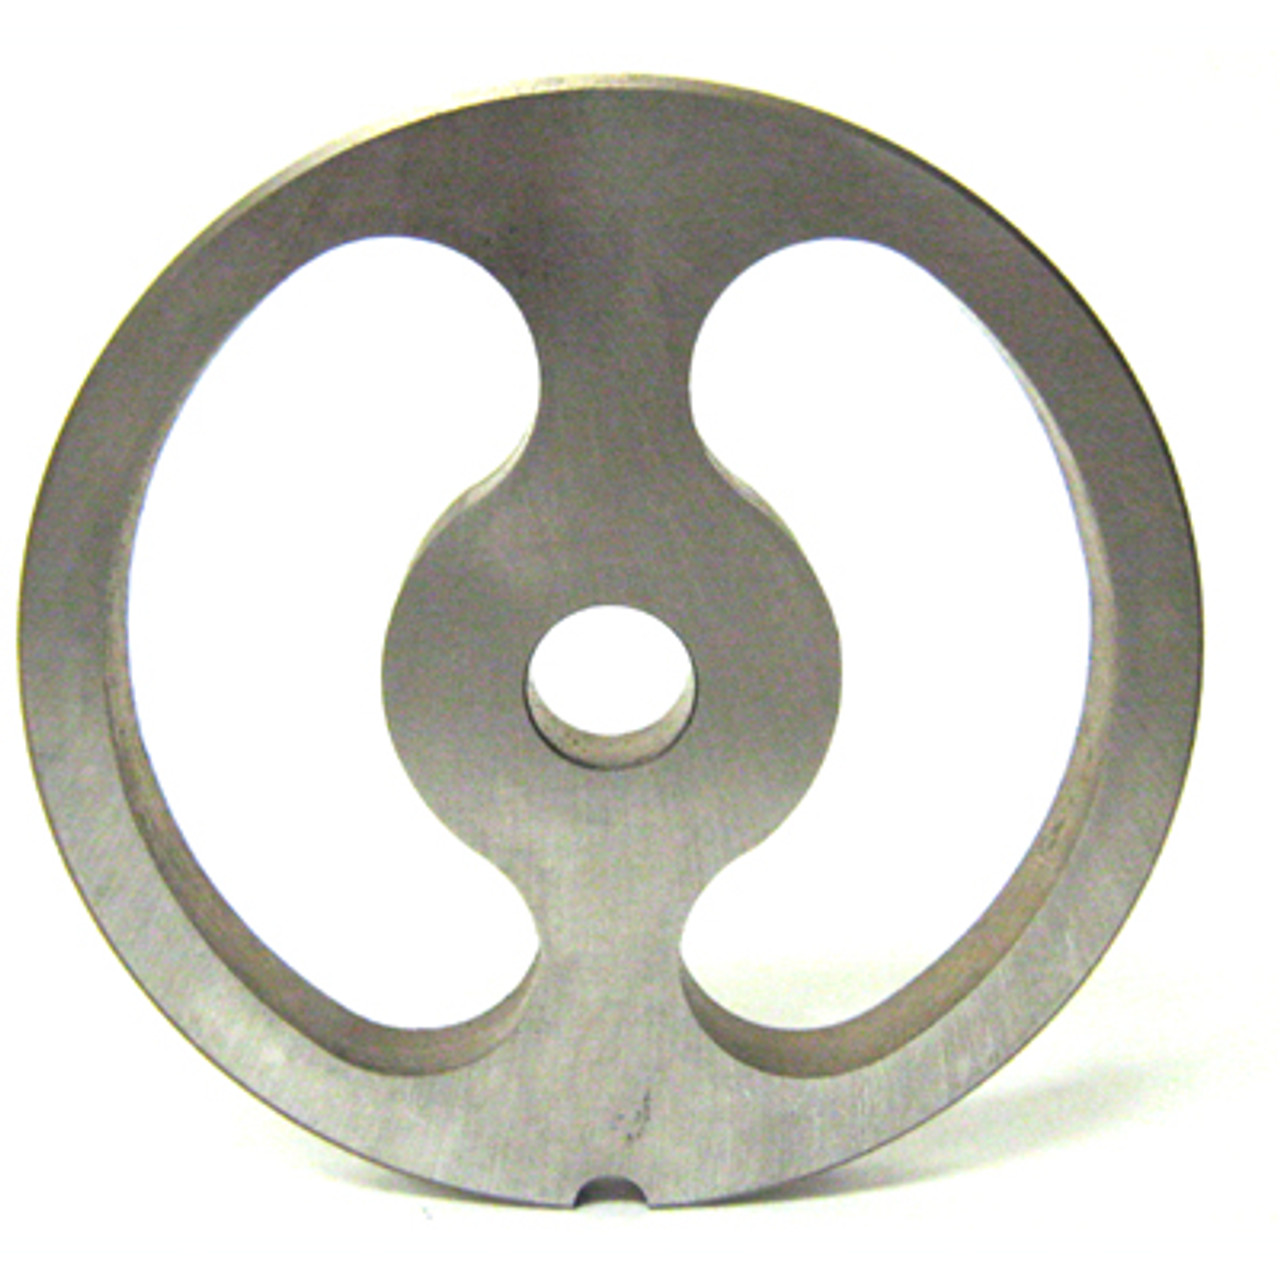 #22 Meat Grinder Plate with Kidney Holes